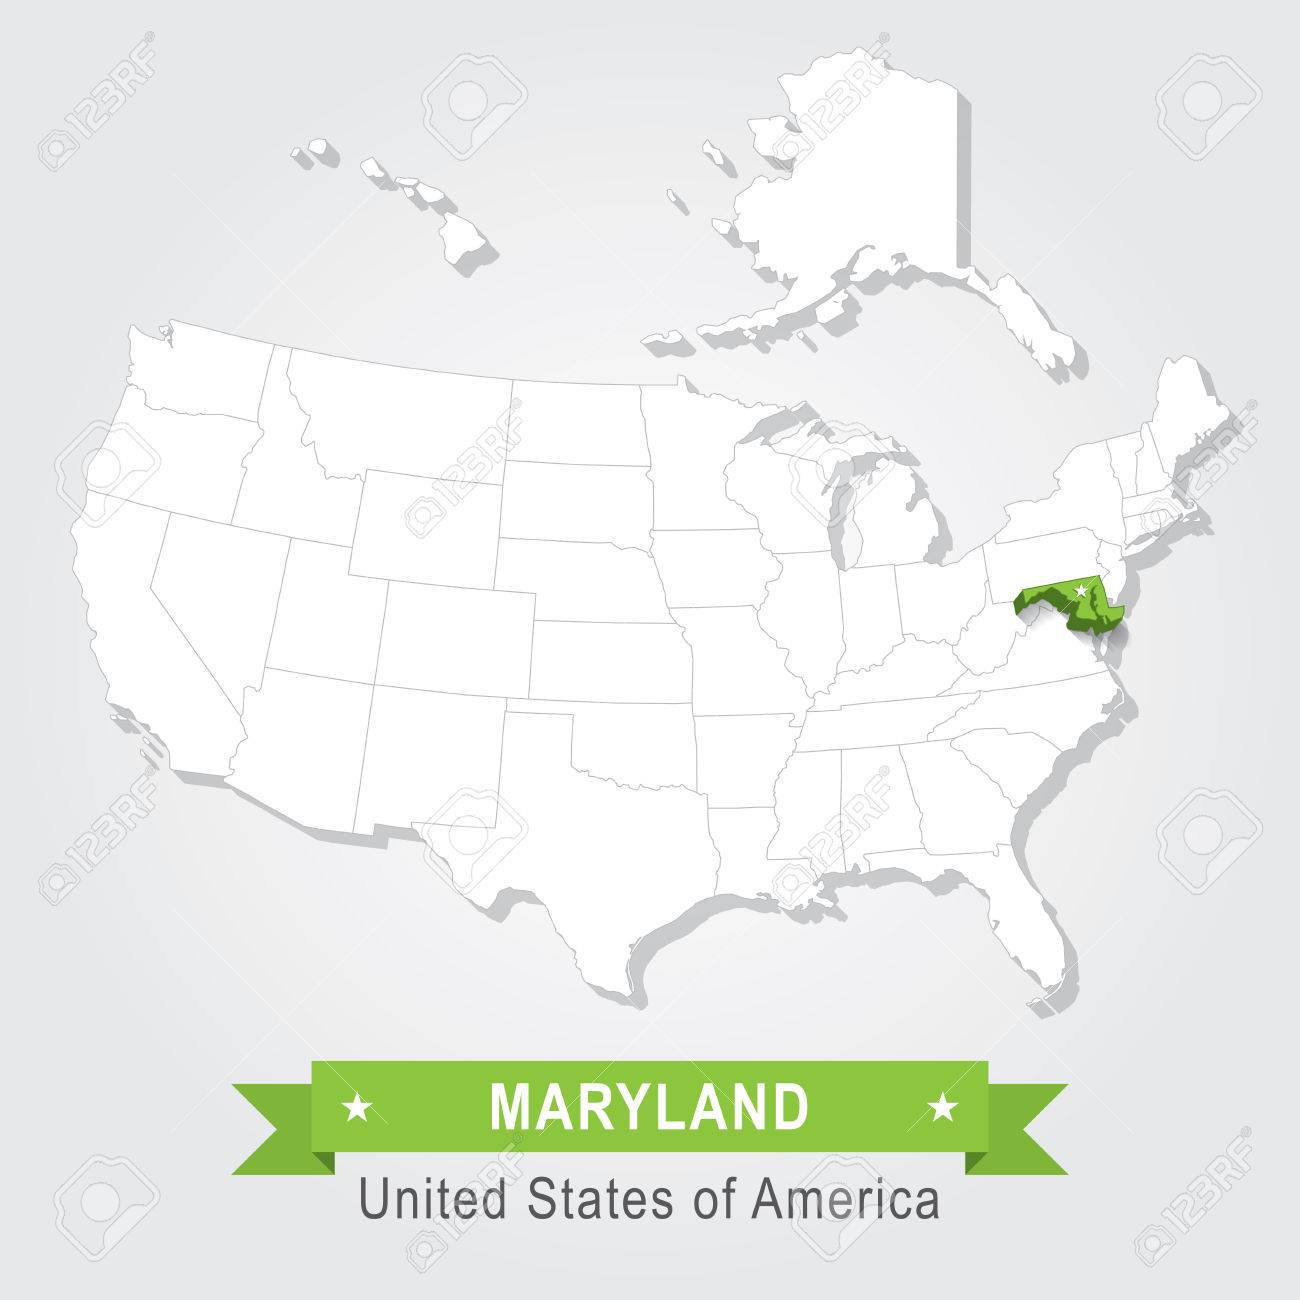 Maryland On Us Map Washington State Counties Map - Maryland usa map